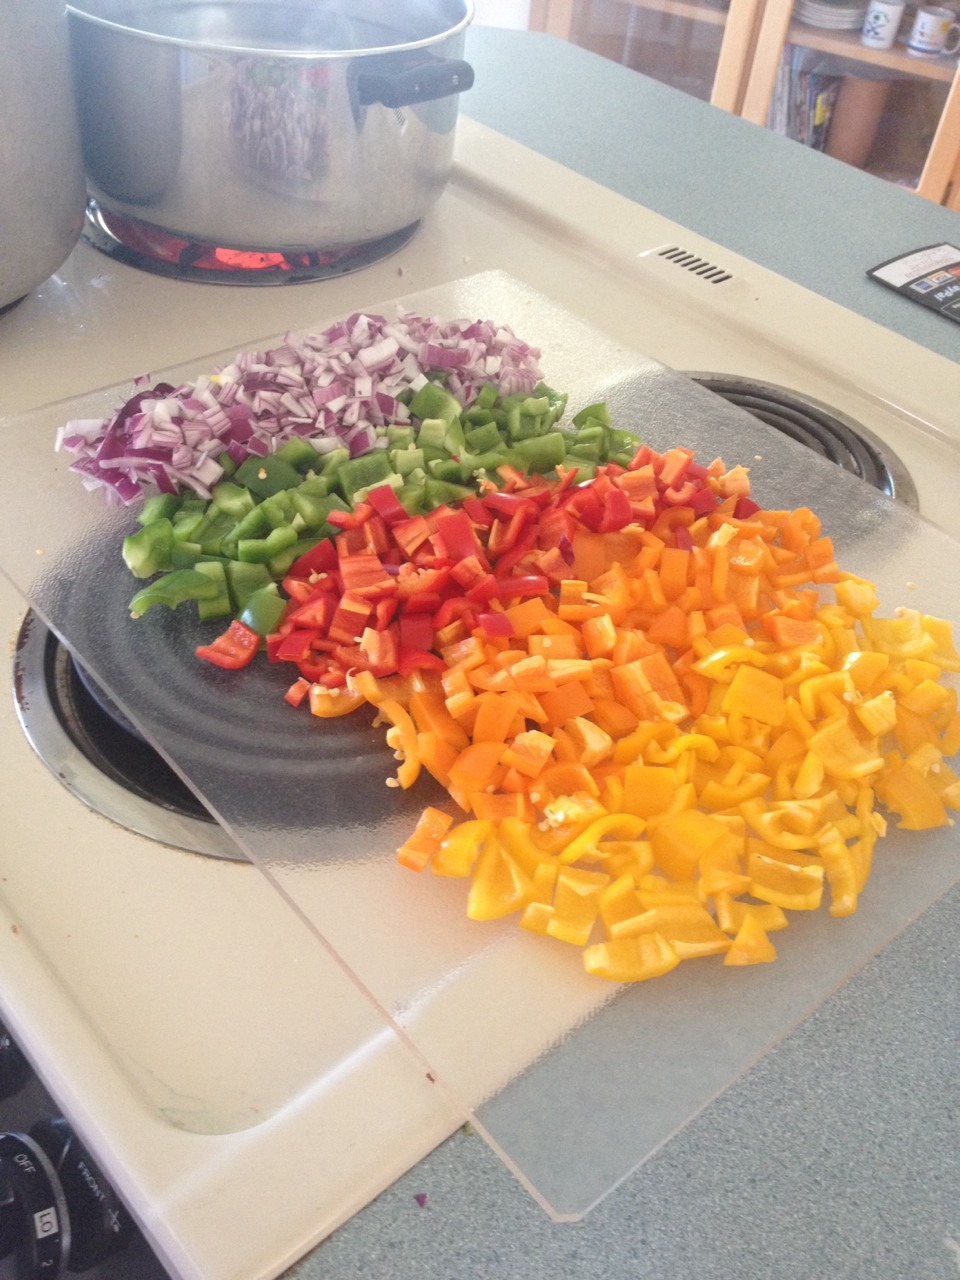 Start with dicing your veggies: 1 cup red onion, green & red bell pepper, orange & yellow hot peppers